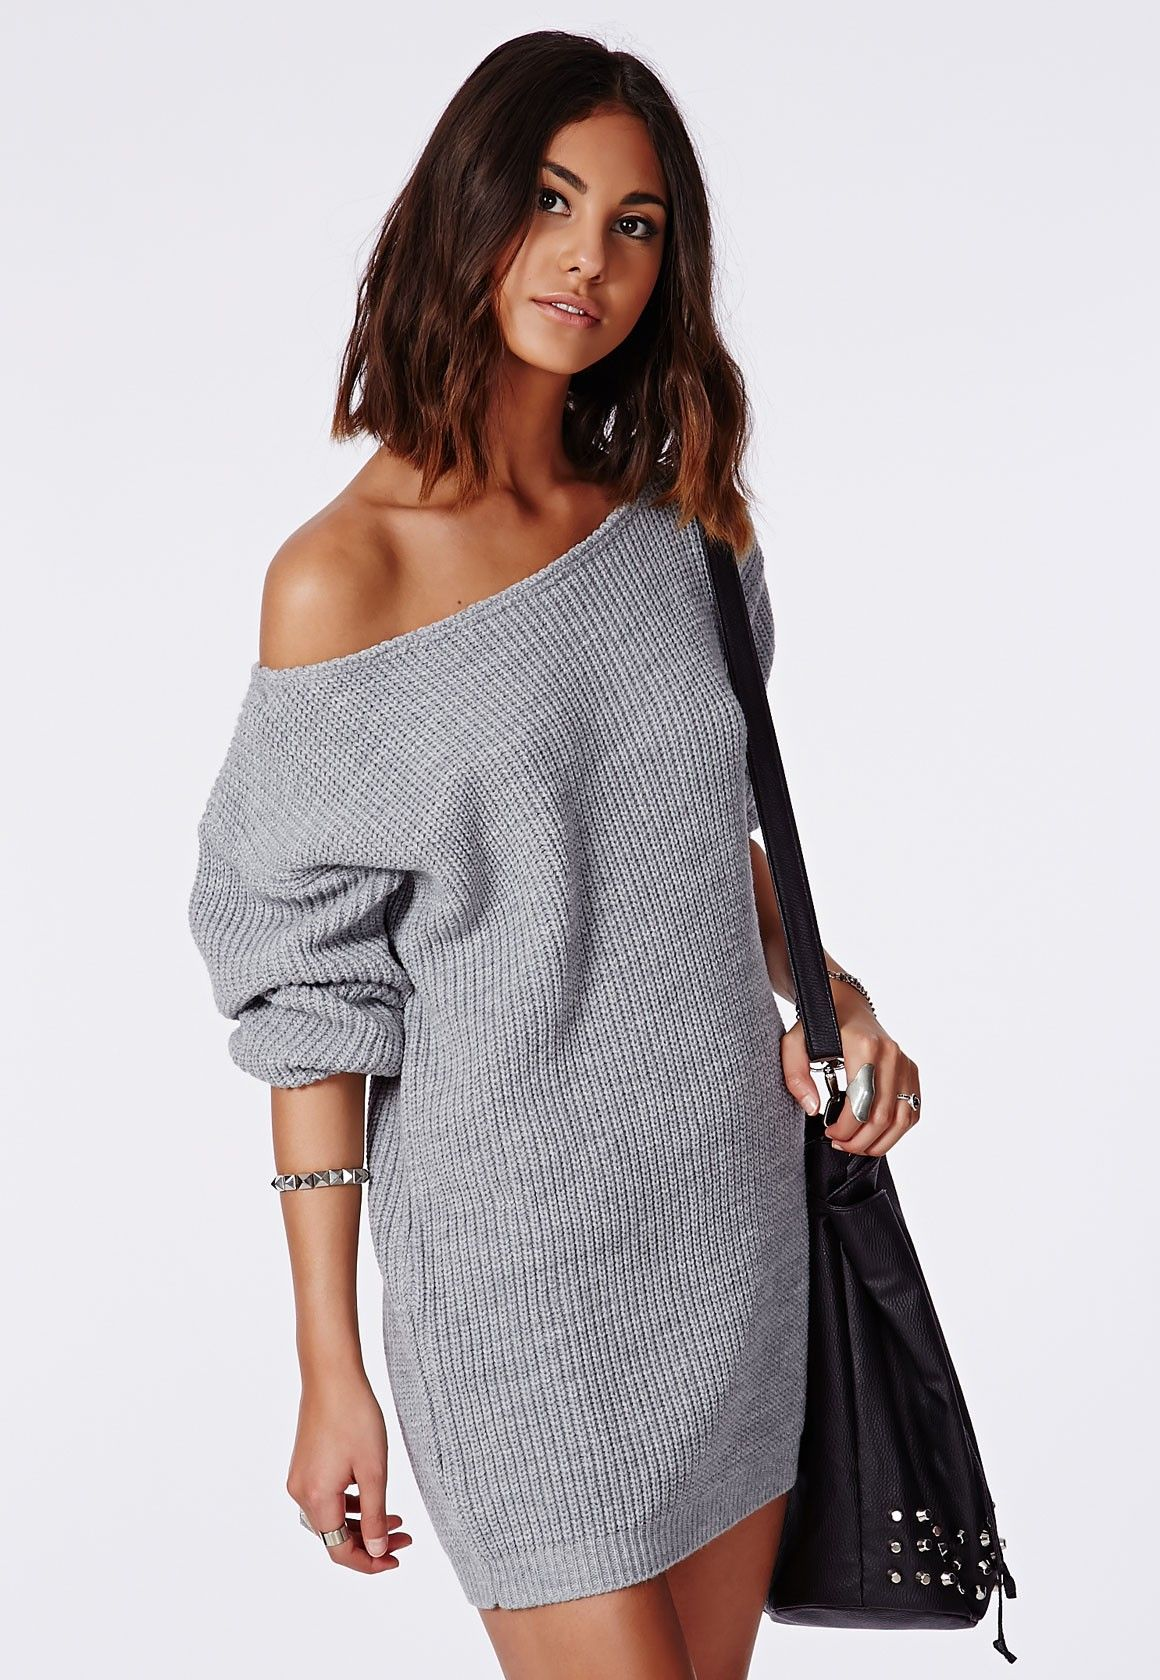 Missguided We're already getting excited for updating our knitwear ...